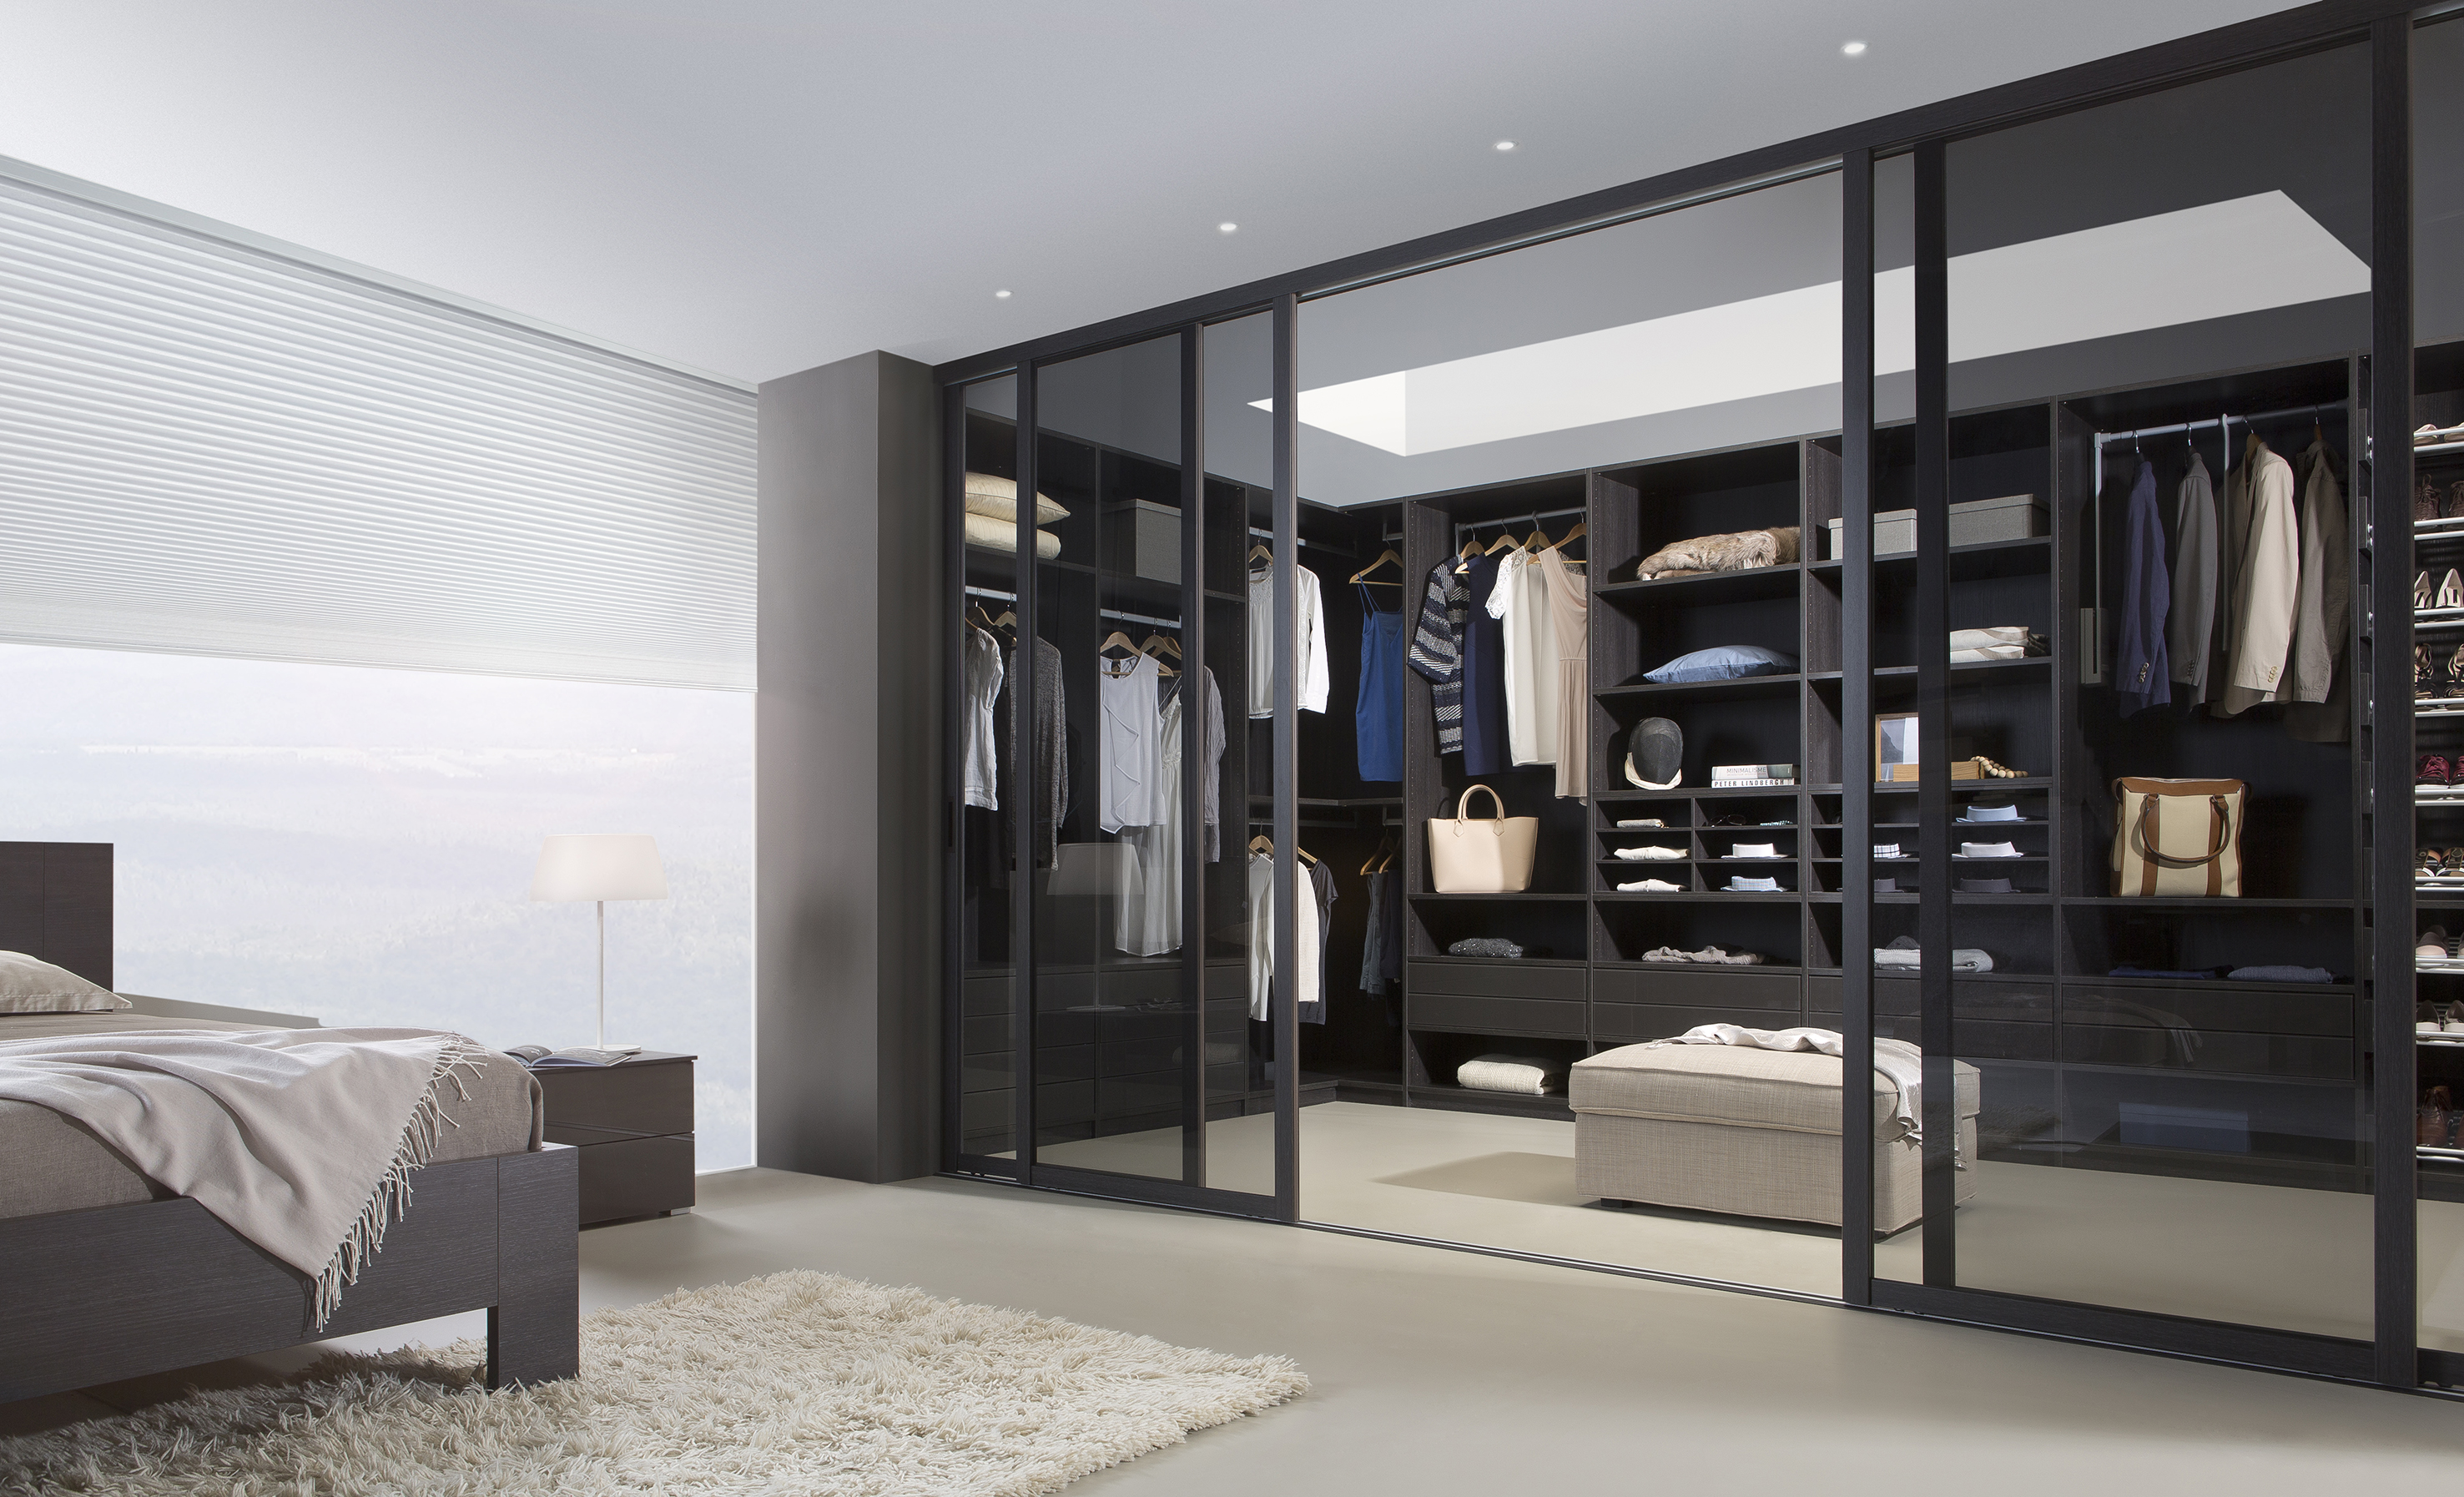 vanvik bett bewertung. Black Bedroom Furniture Sets. Home Design Ideas